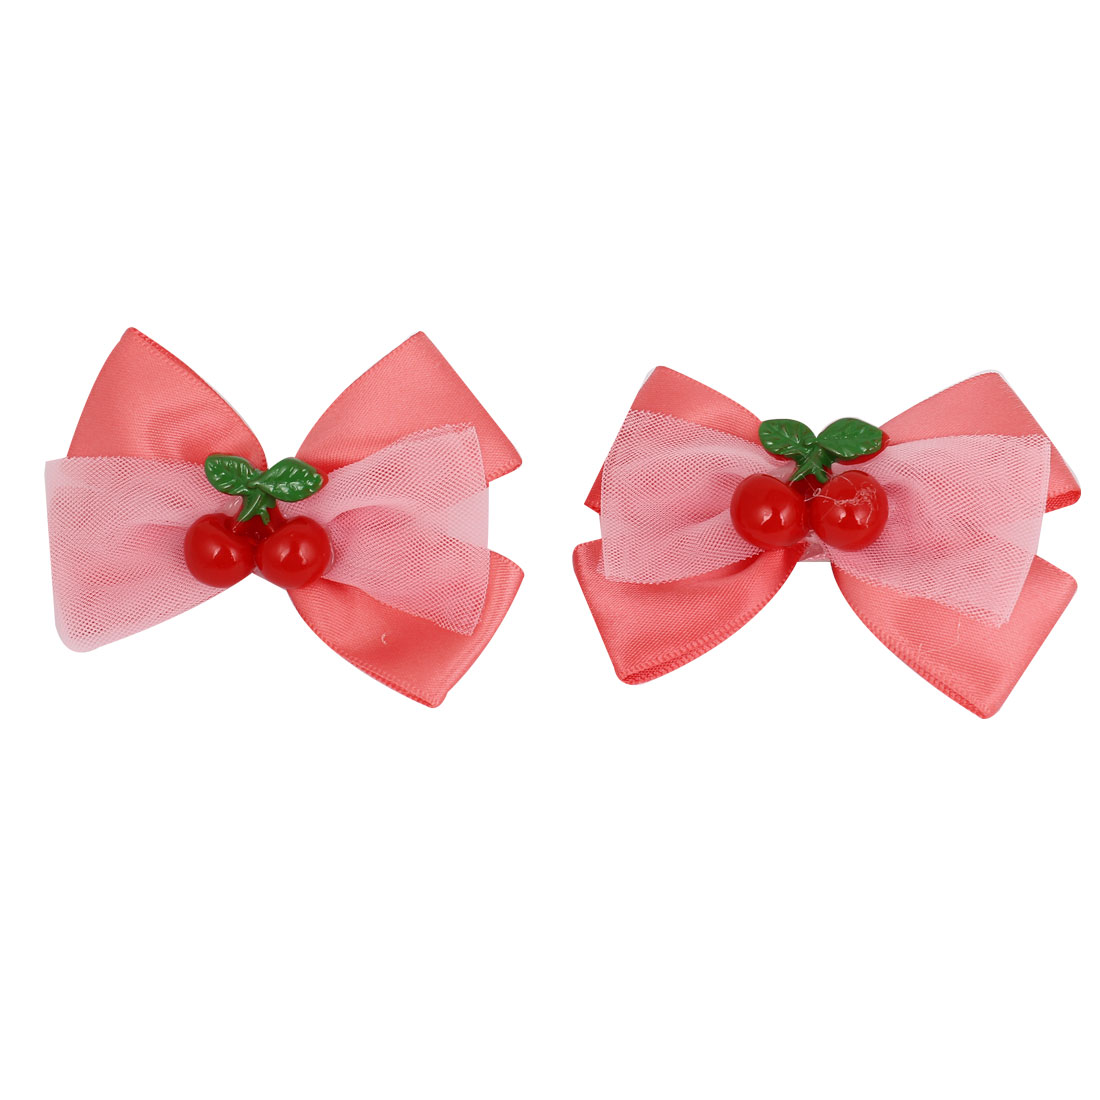 2 Pcs Coral Pink Nylon Organza Bowknot Two Cherries Decor Alligator Hair Clip for Girl